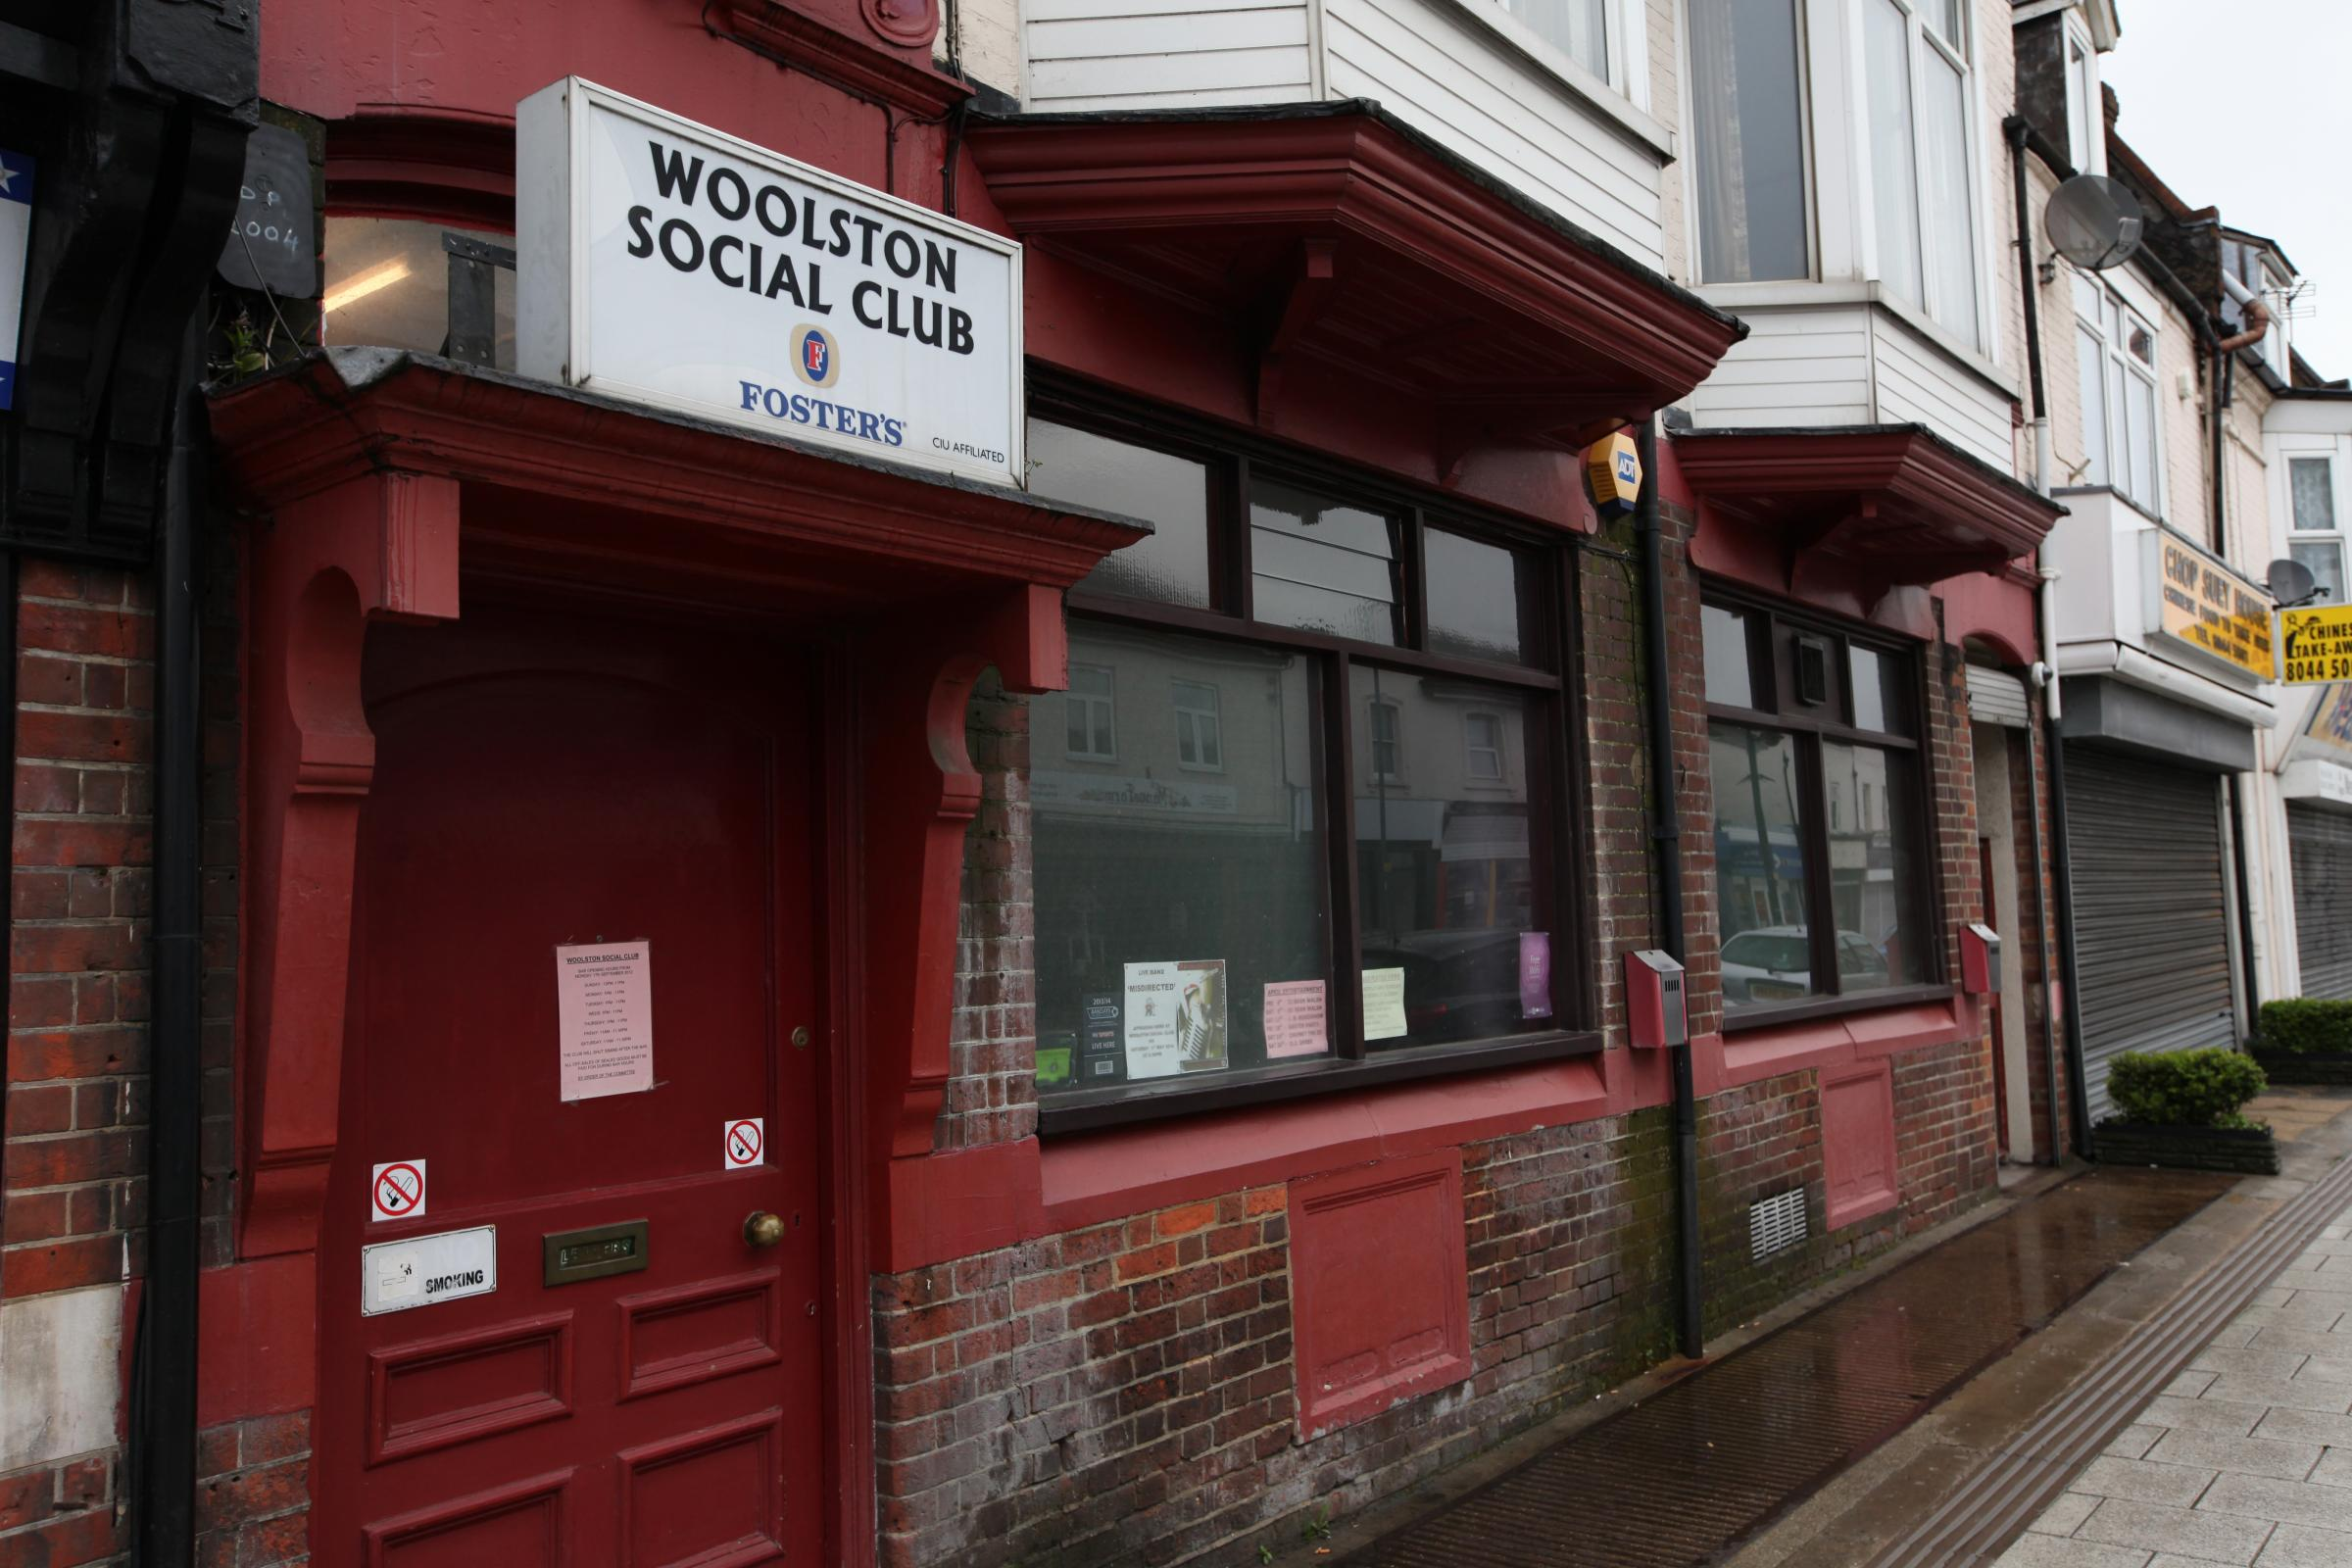 Mass brawl at wake sparks concerns over club licences